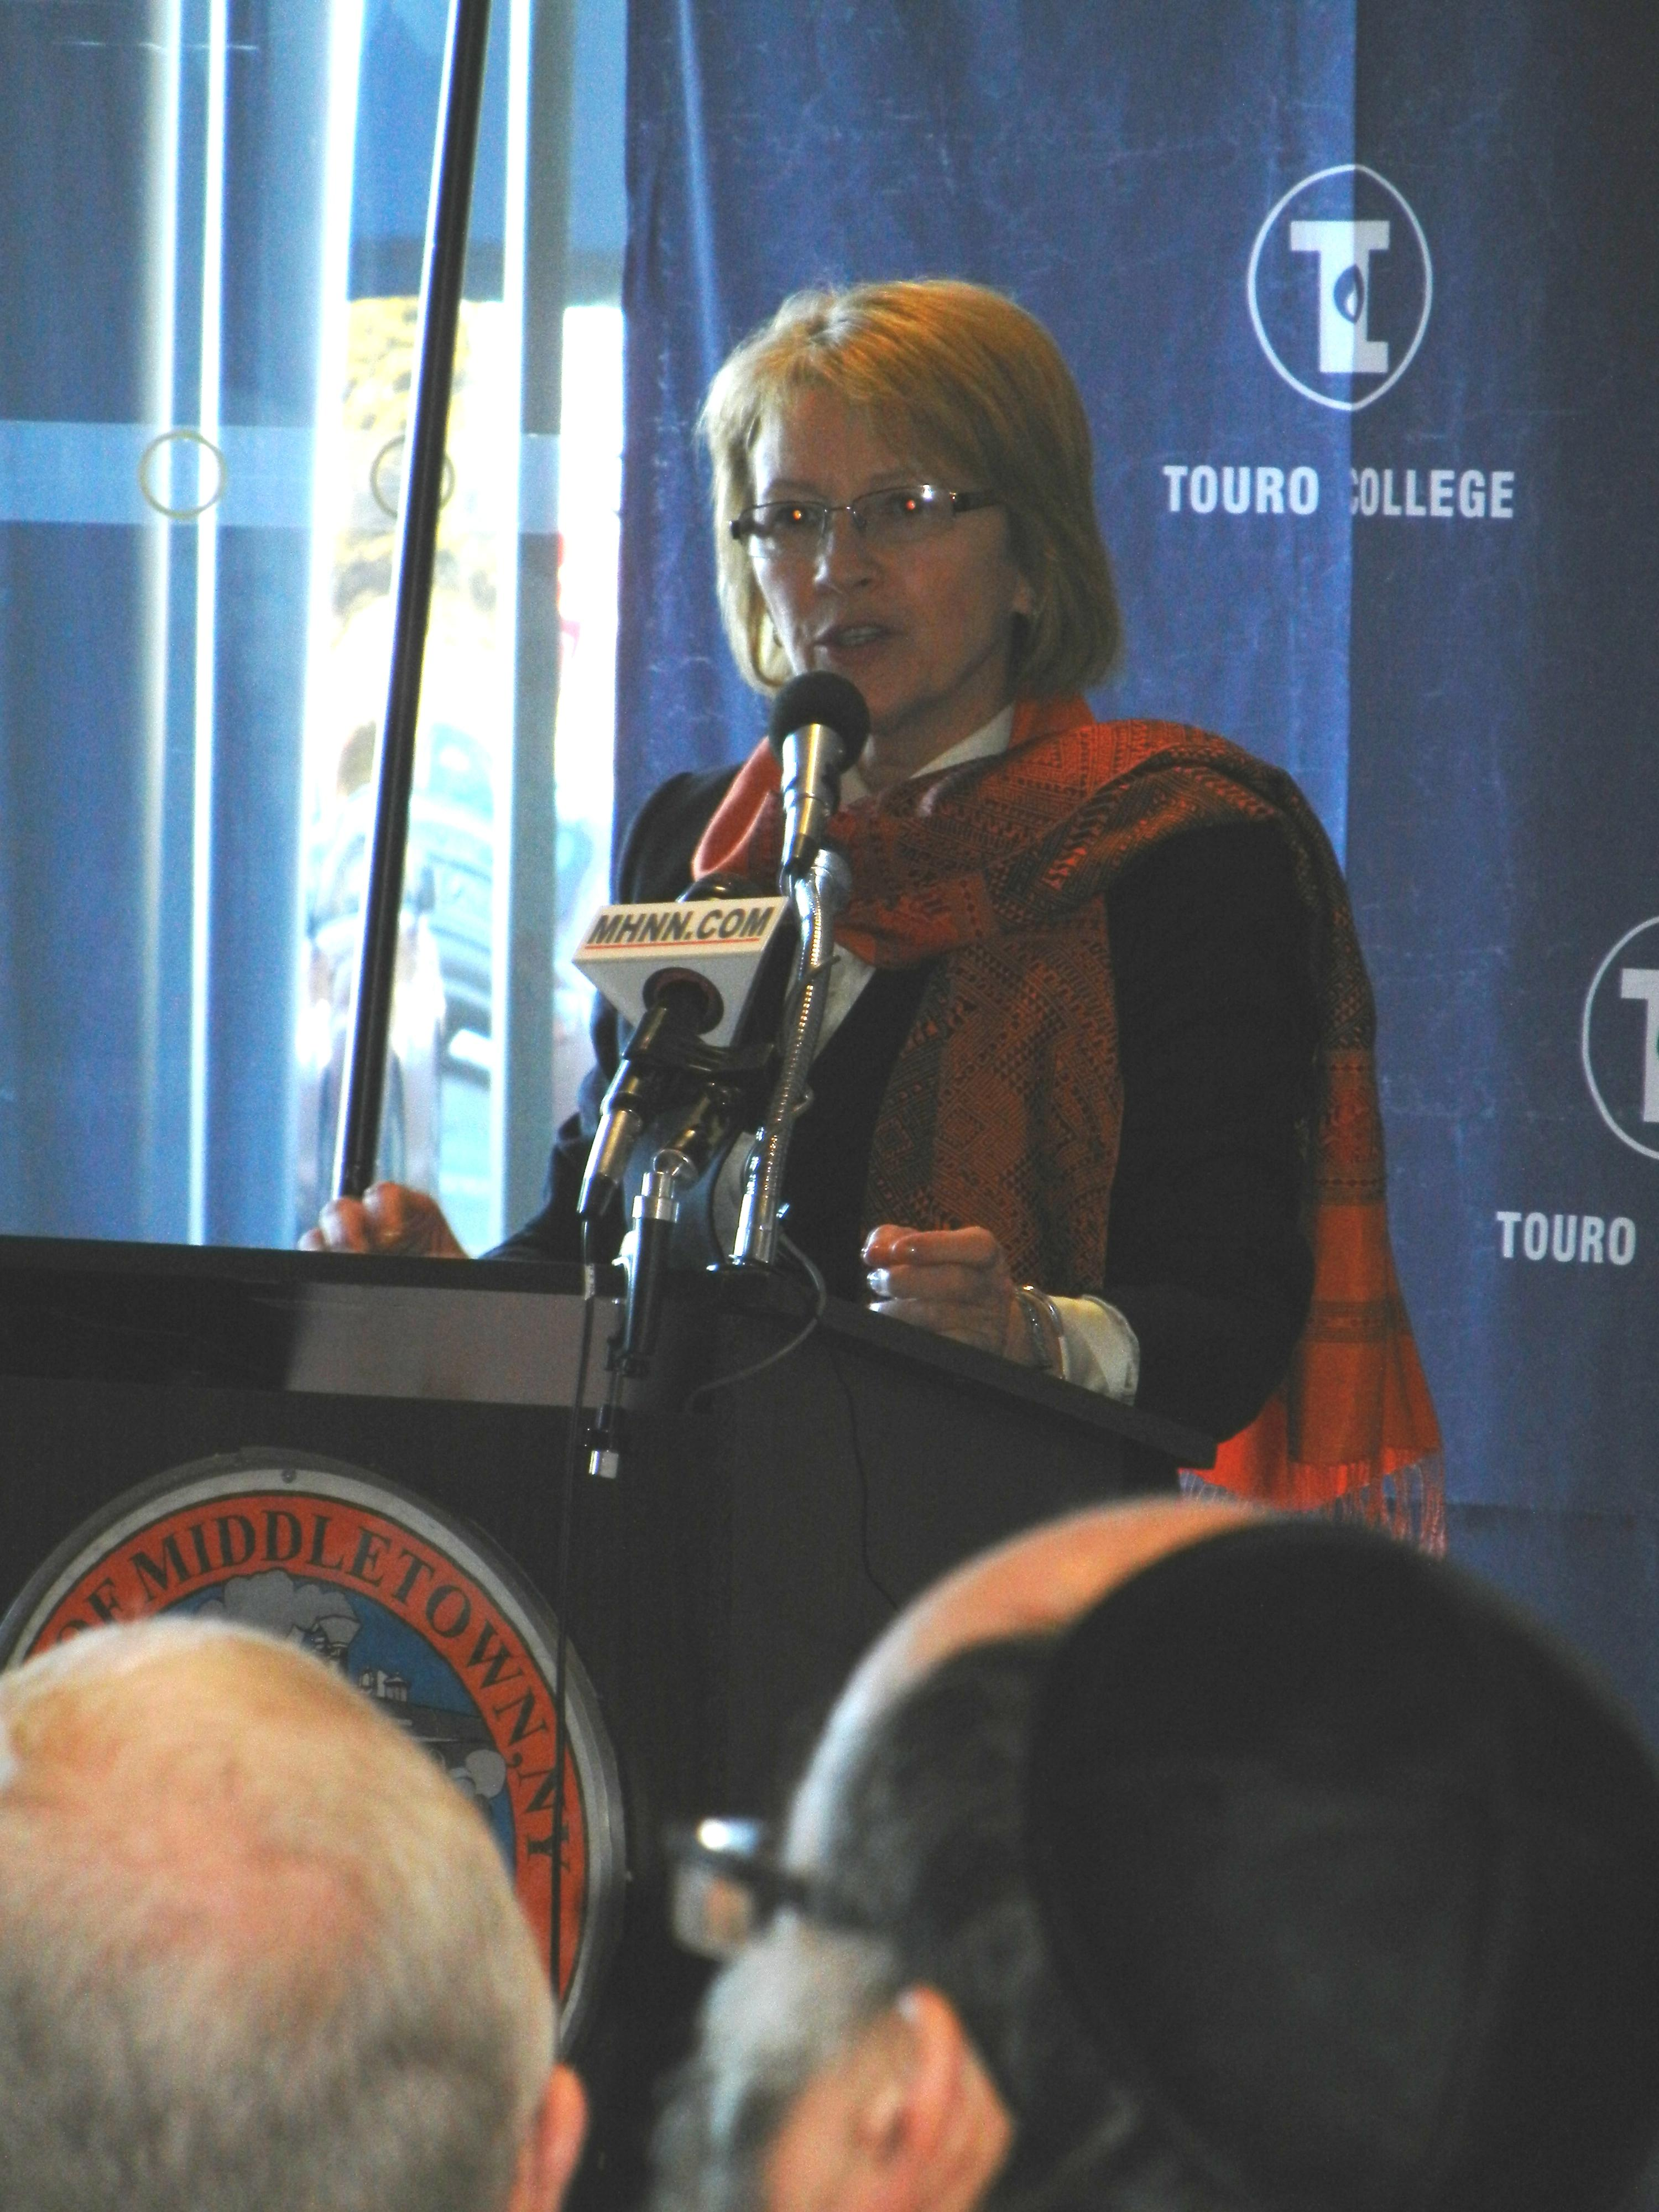 Assemblywoman Gunther spoke at the announcement of Touro Medical College of Osteopathic Medicine.  The College is slated to open at the campus of the former Horton Hospital in Middletown.